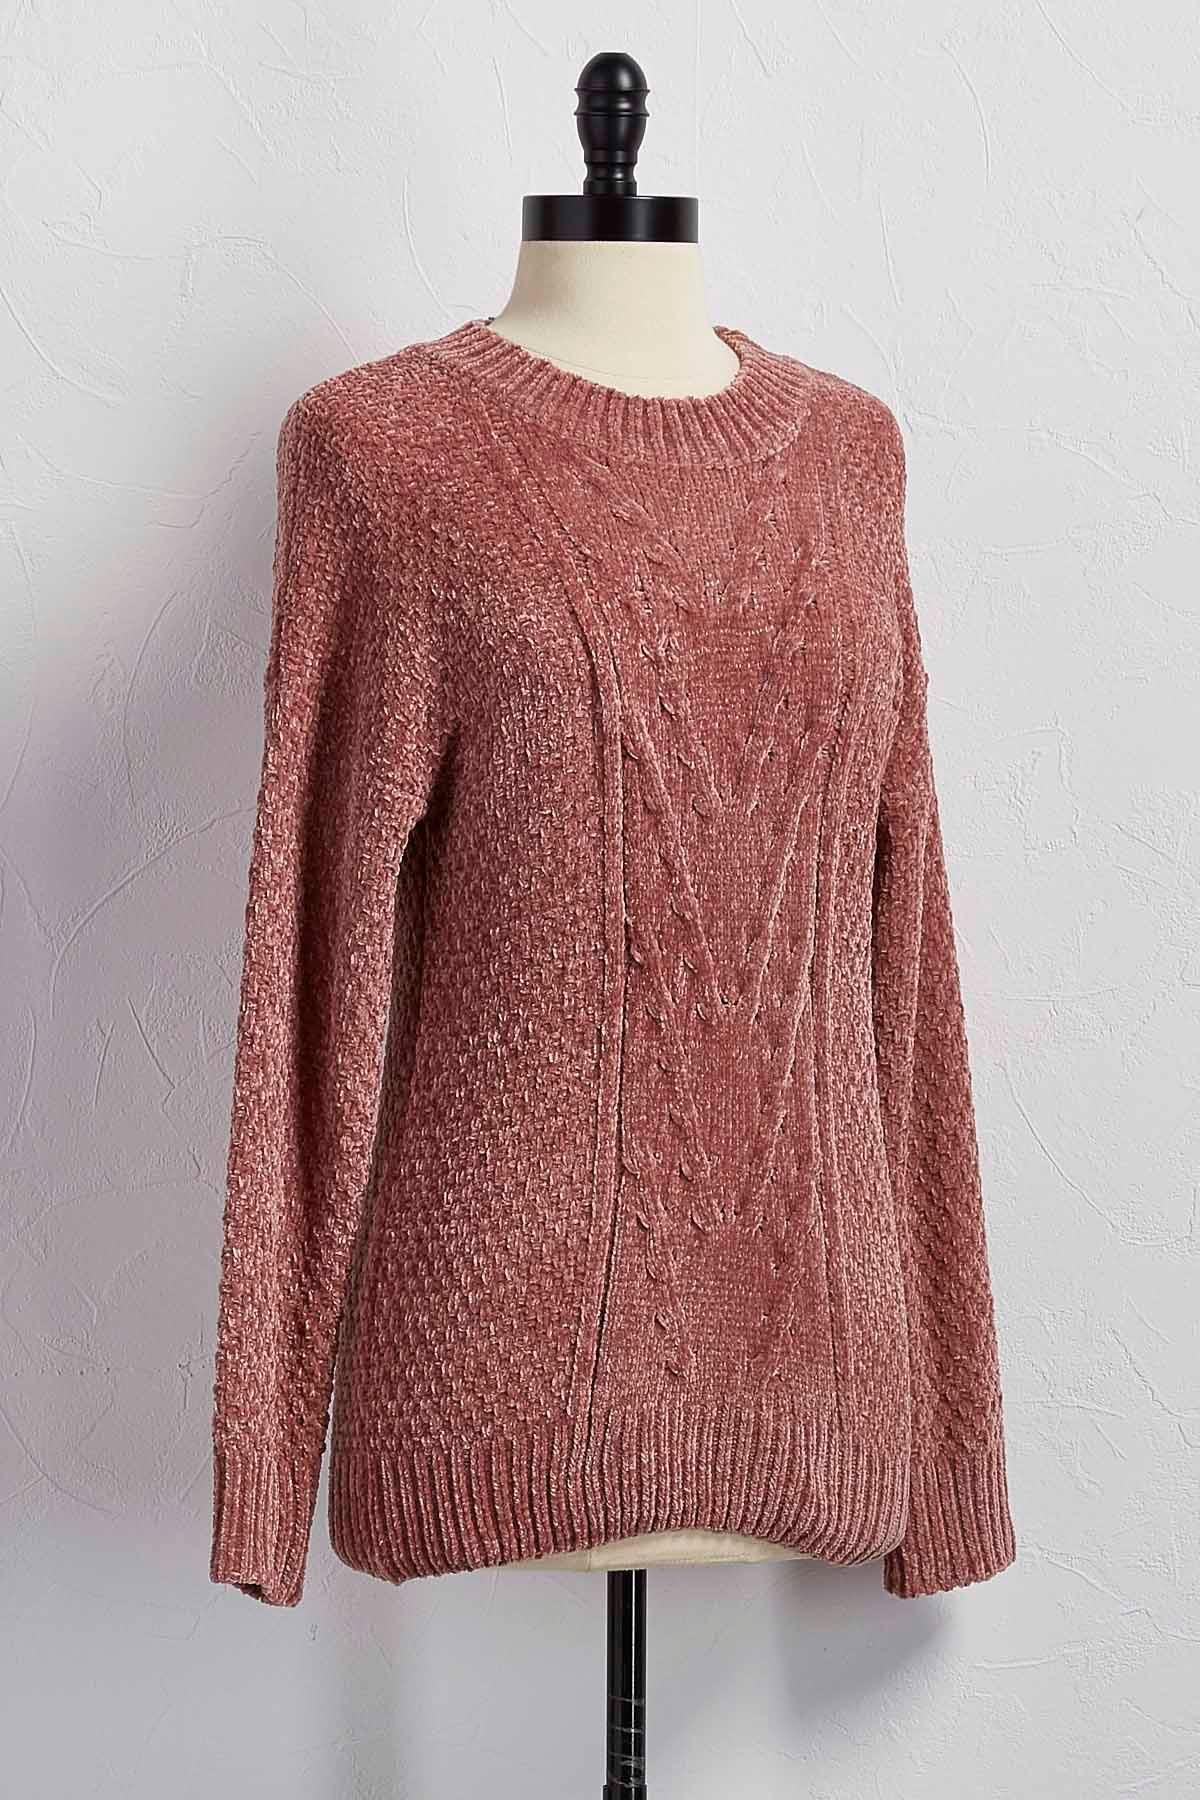 Soft, warm and so chic. Wear it over a tee and denim, this is the sweater of the season. 30